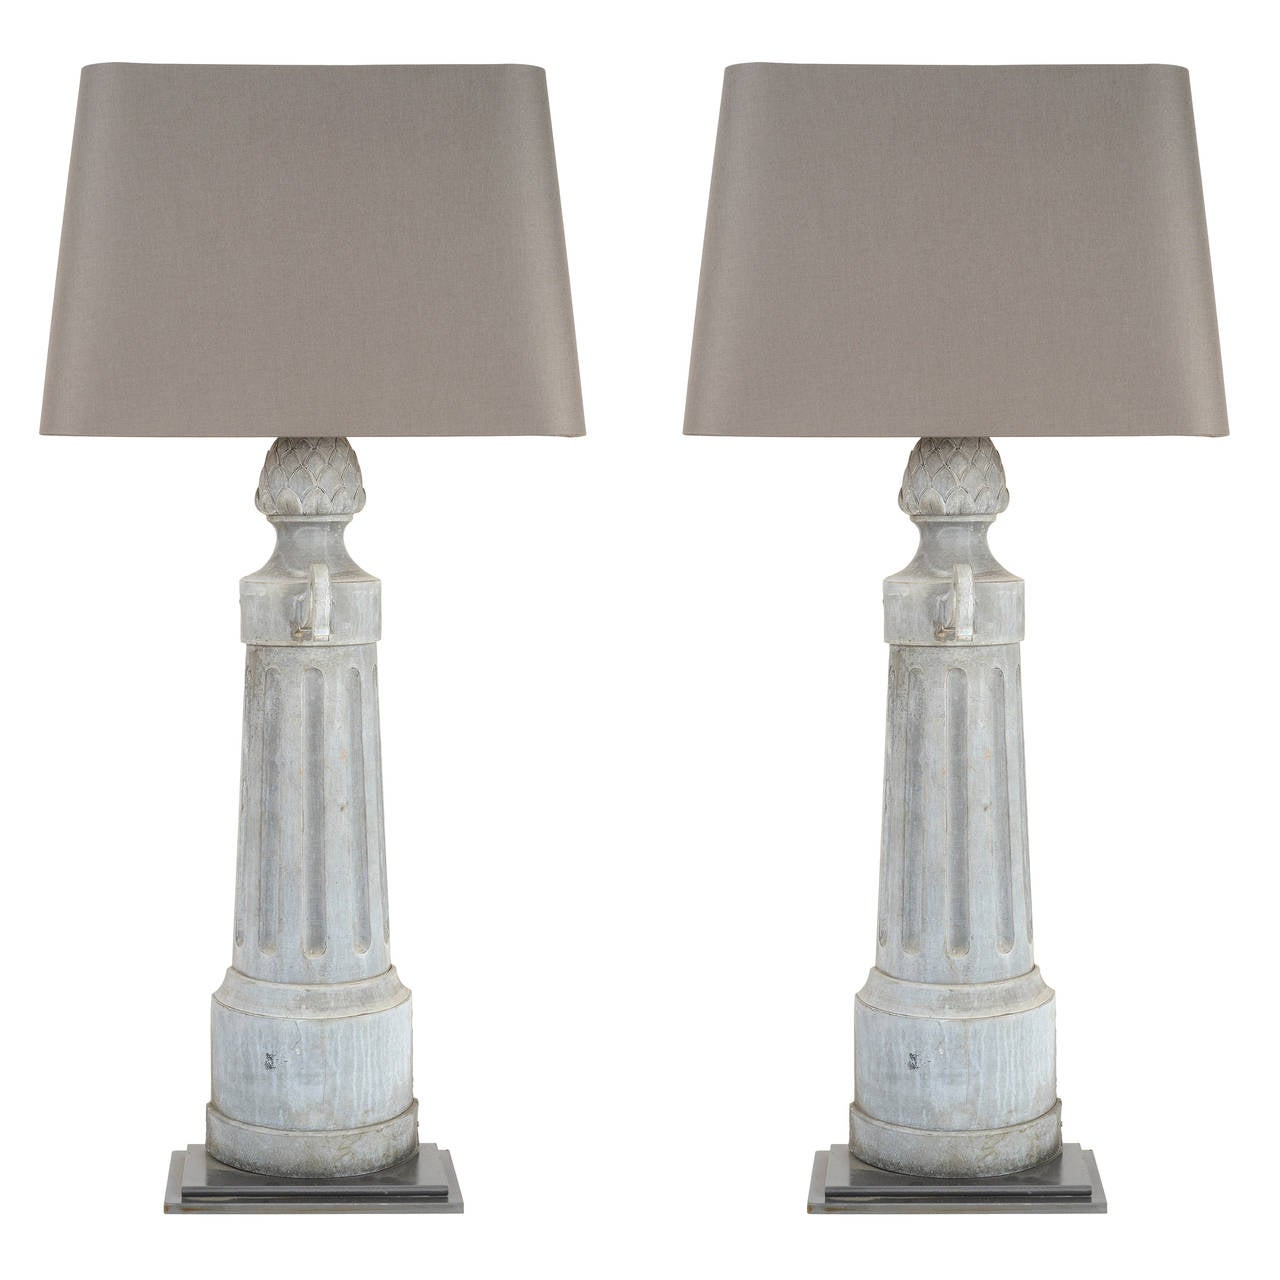 Pair Of Tall Metal Lamps With Custom Shade For Sale At 1stdibs